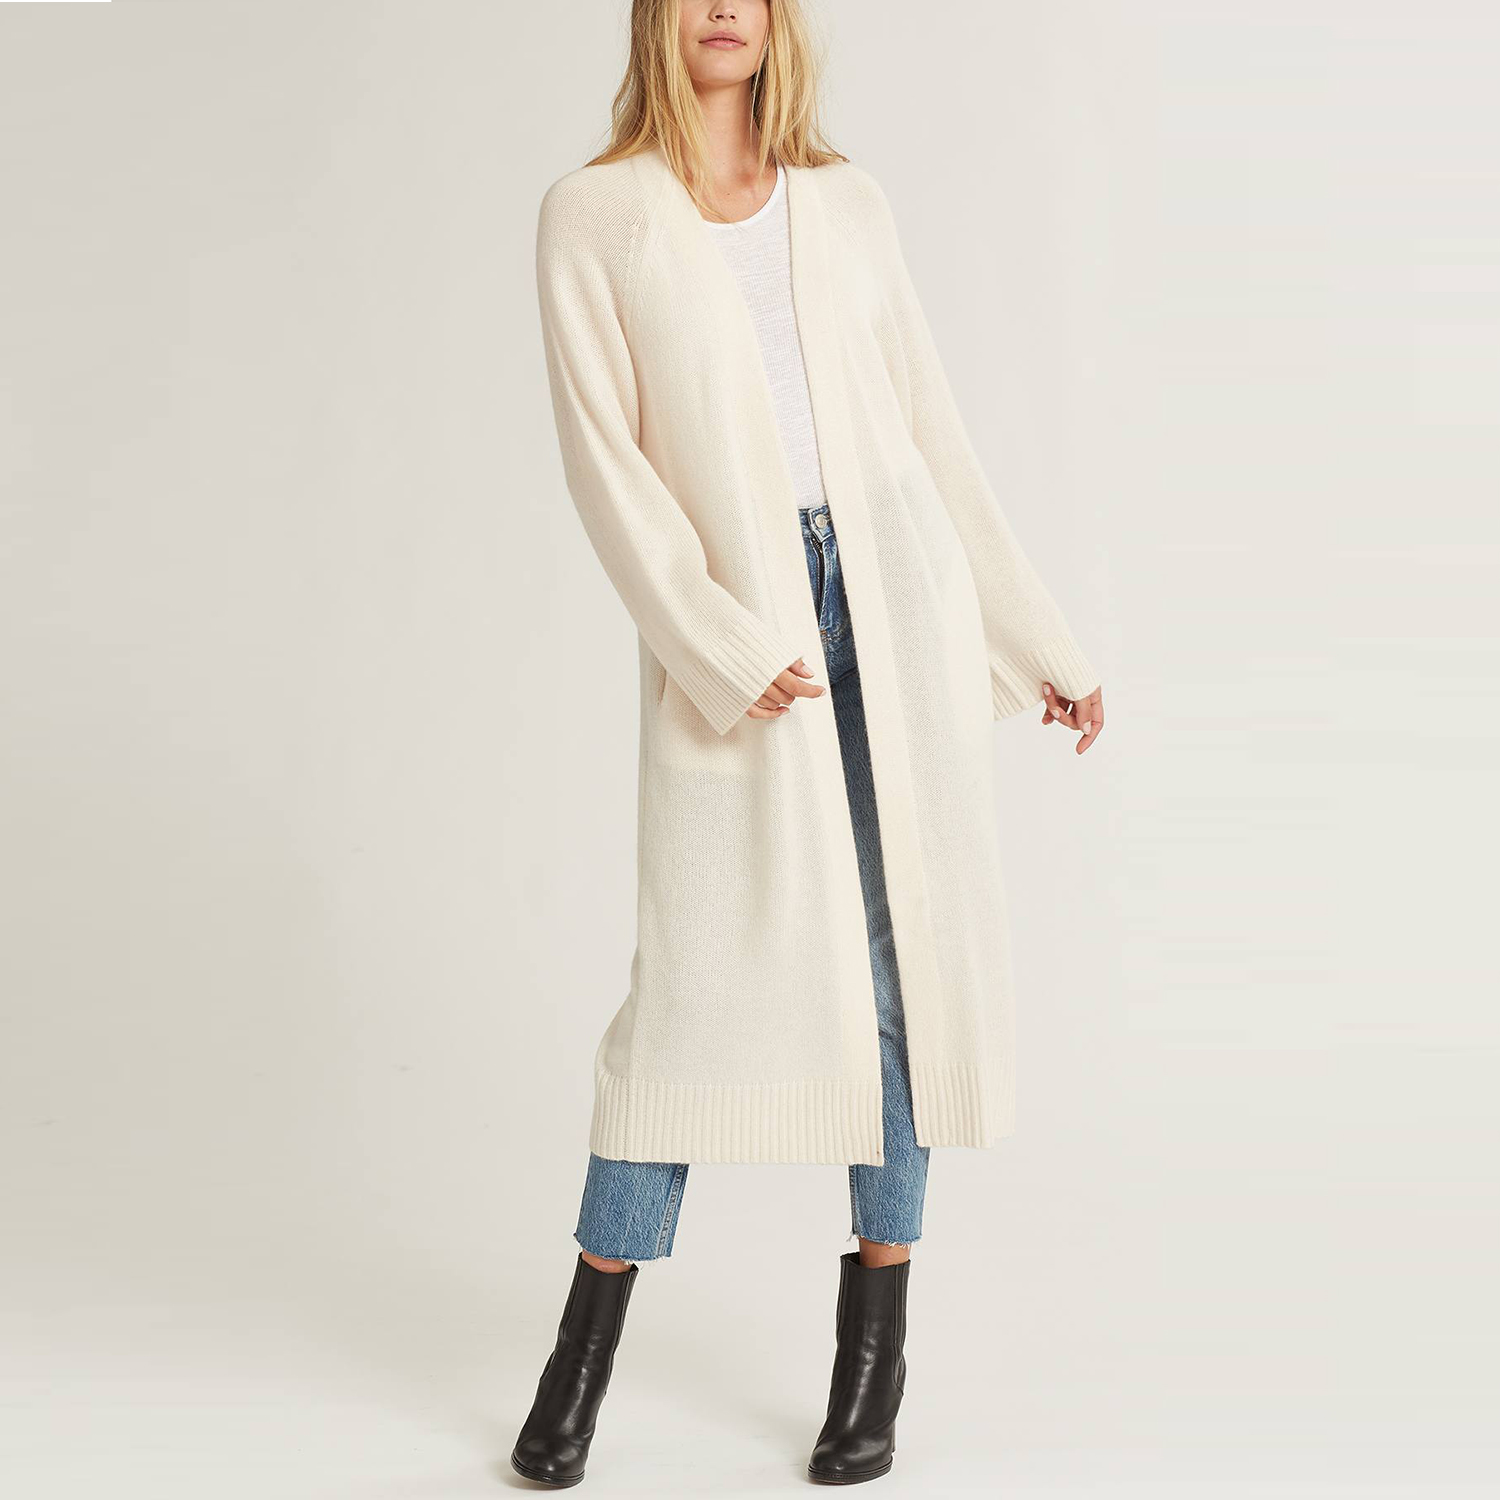 Makena Pure Cashmere Long Cardigan in Chalk